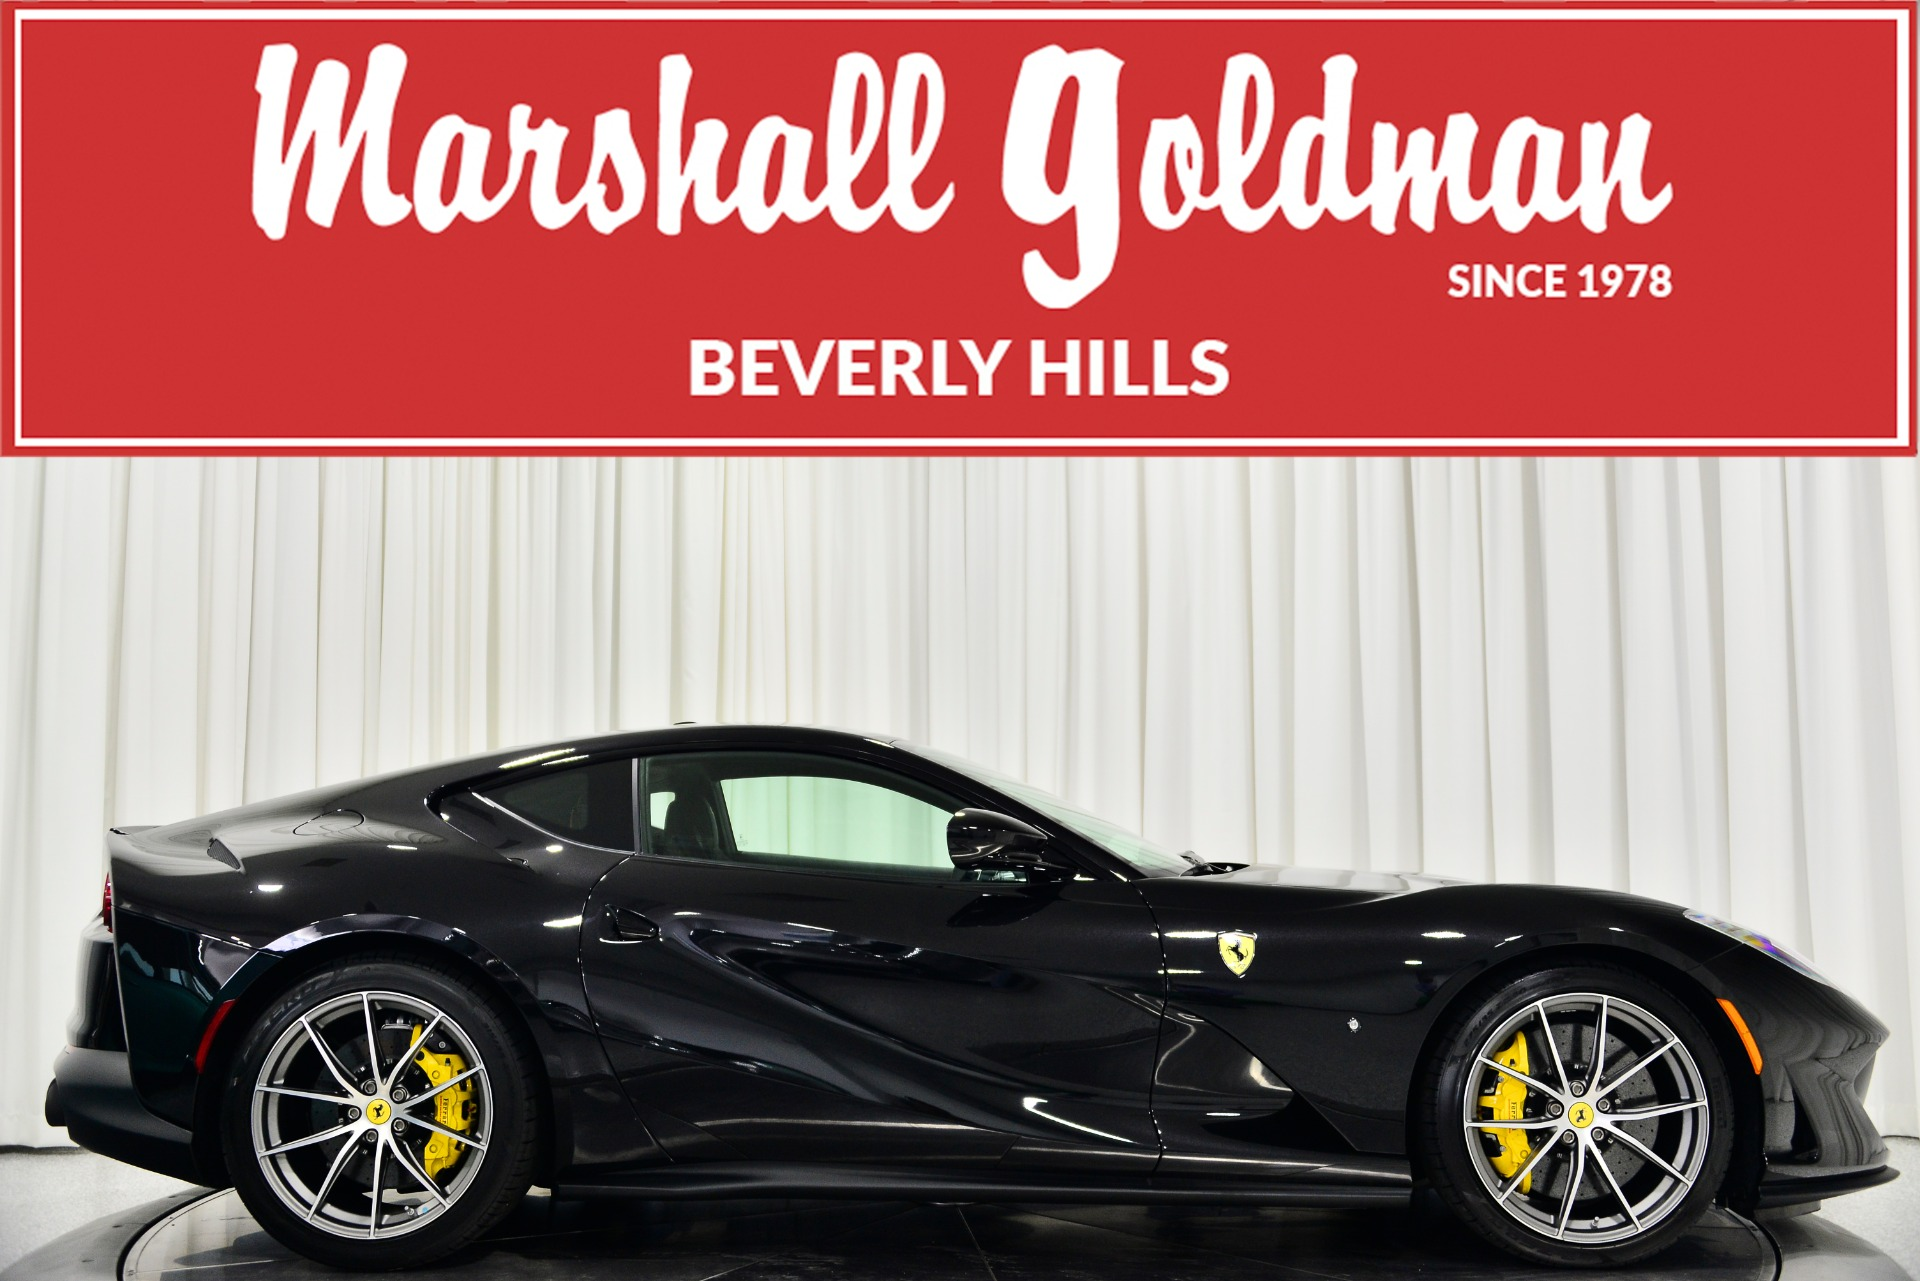 Used 2020 Ferrari 812 Superfast For Sale Sold Marshall Goldman Beverly Hills Stock B21167